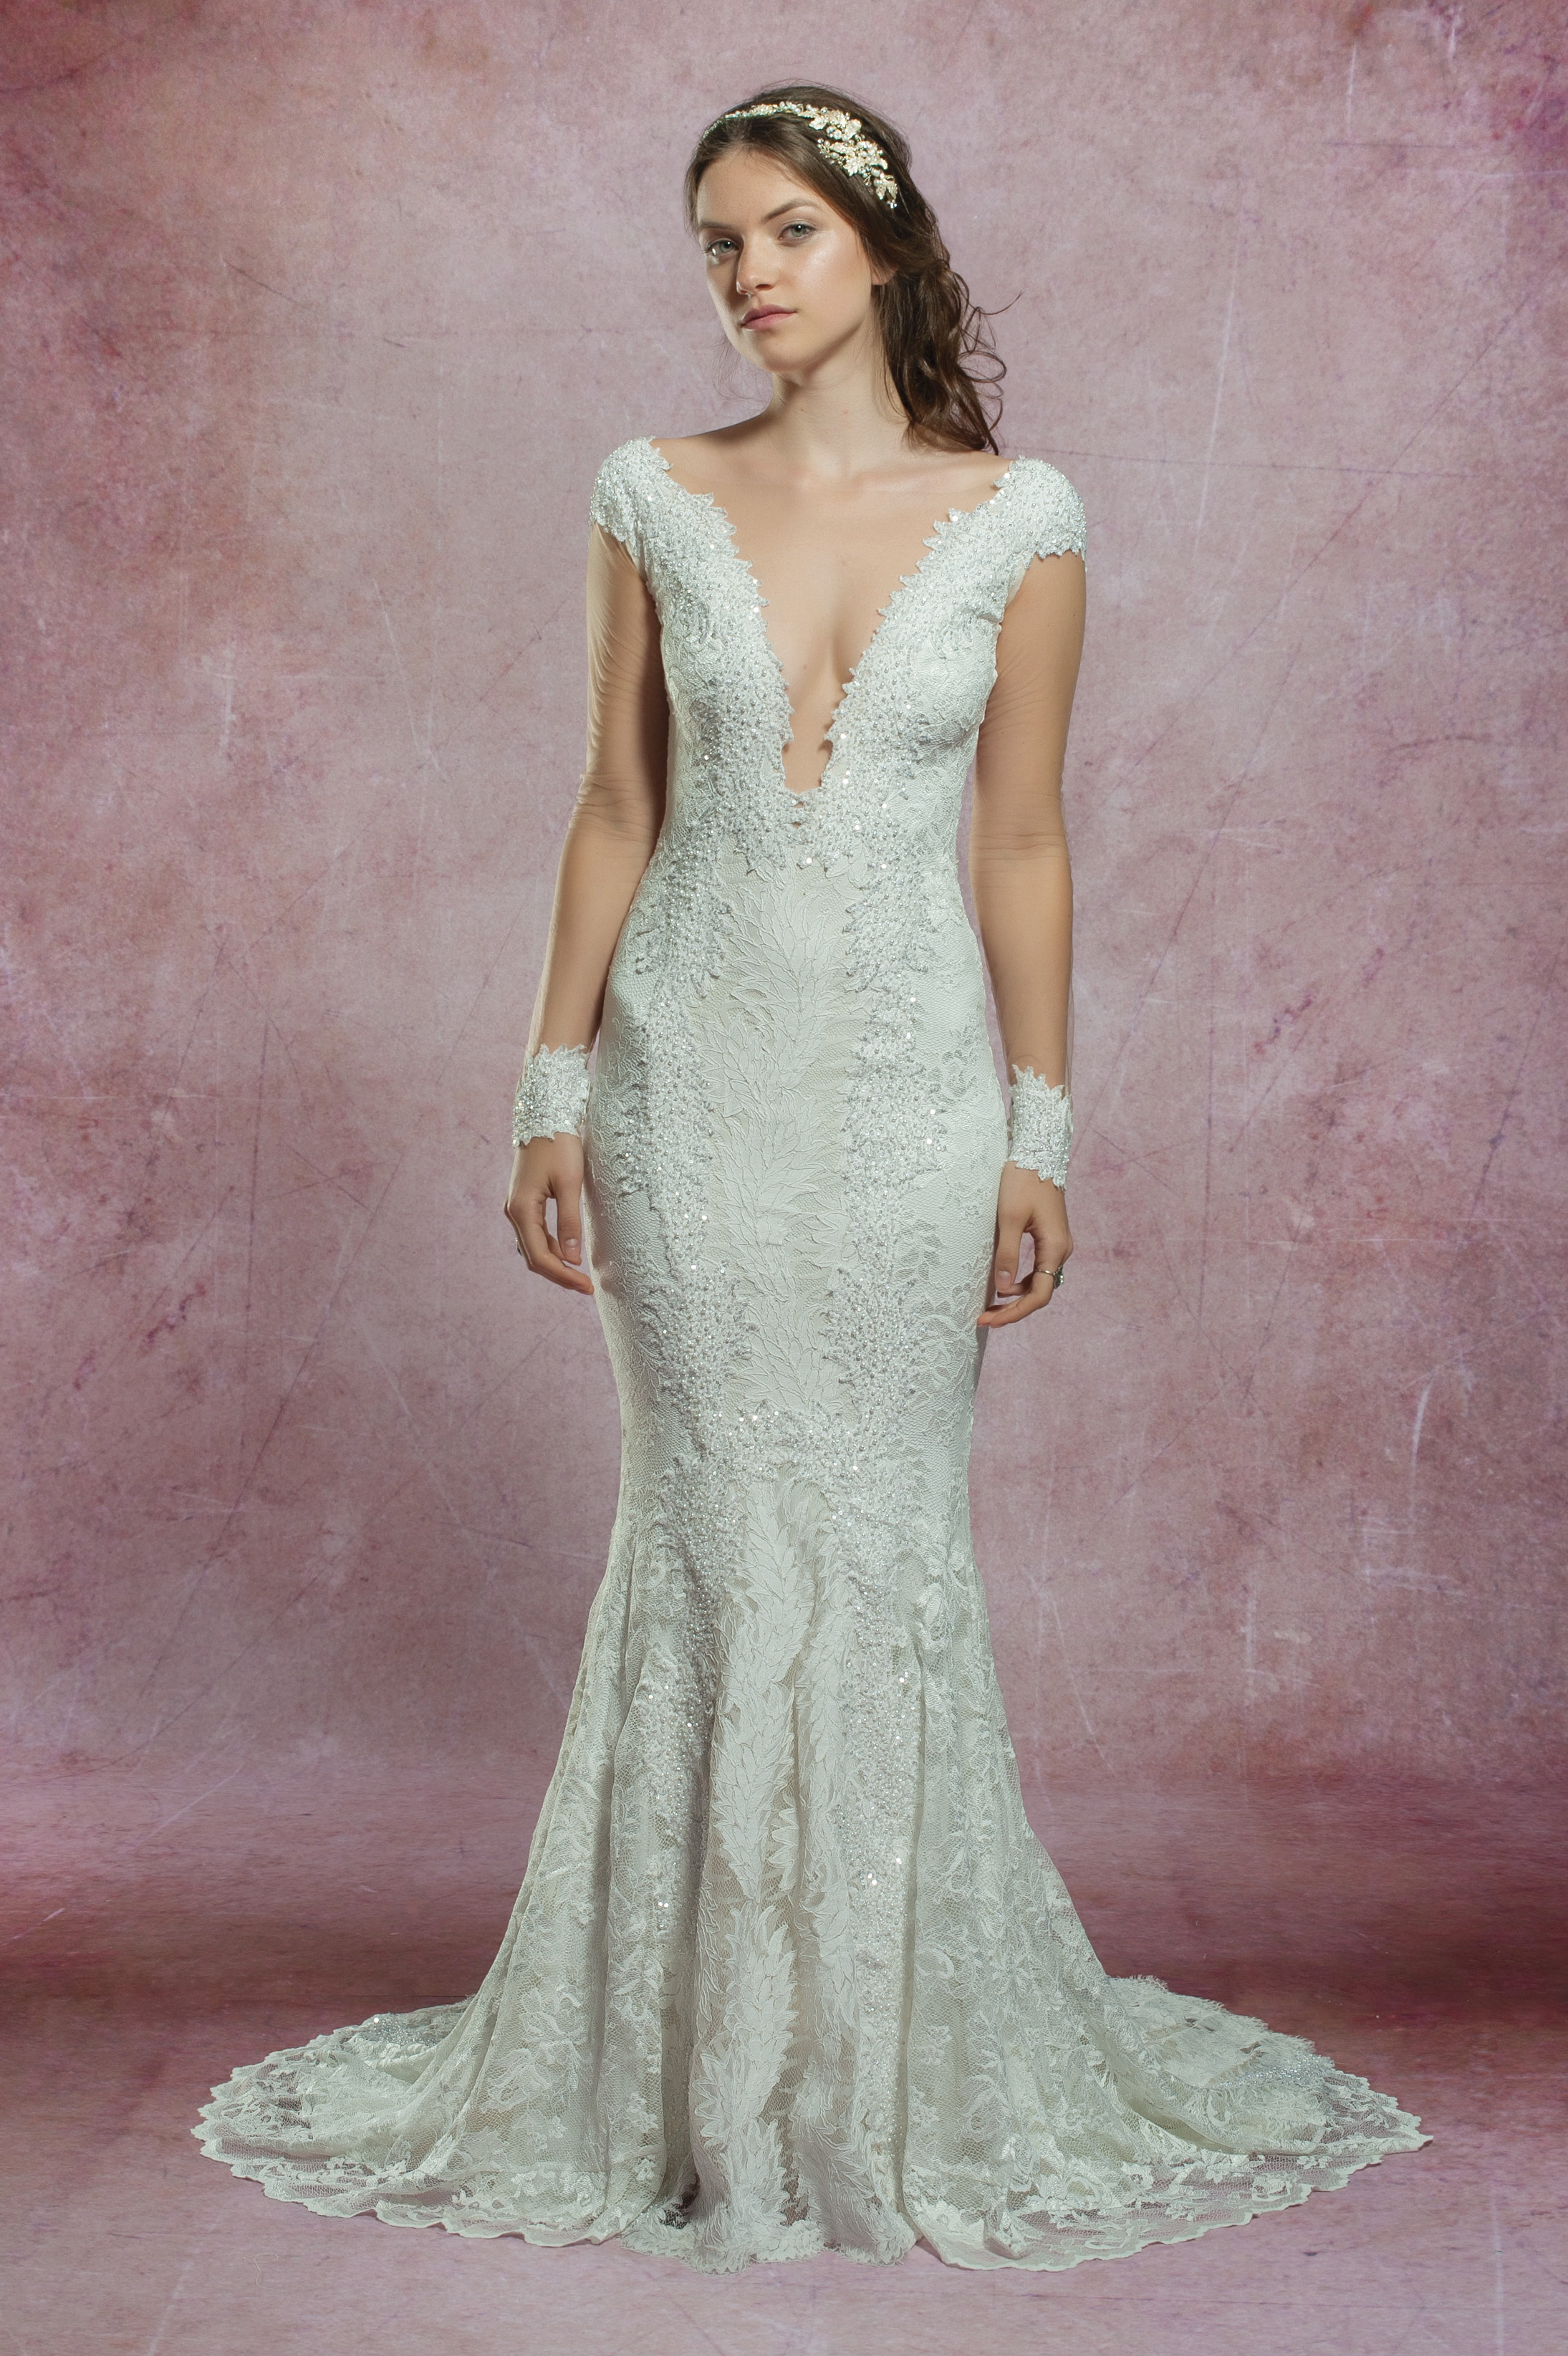 Long Illusion Sleeve All Lace Deep V Neckline Fit And Flare Wedding